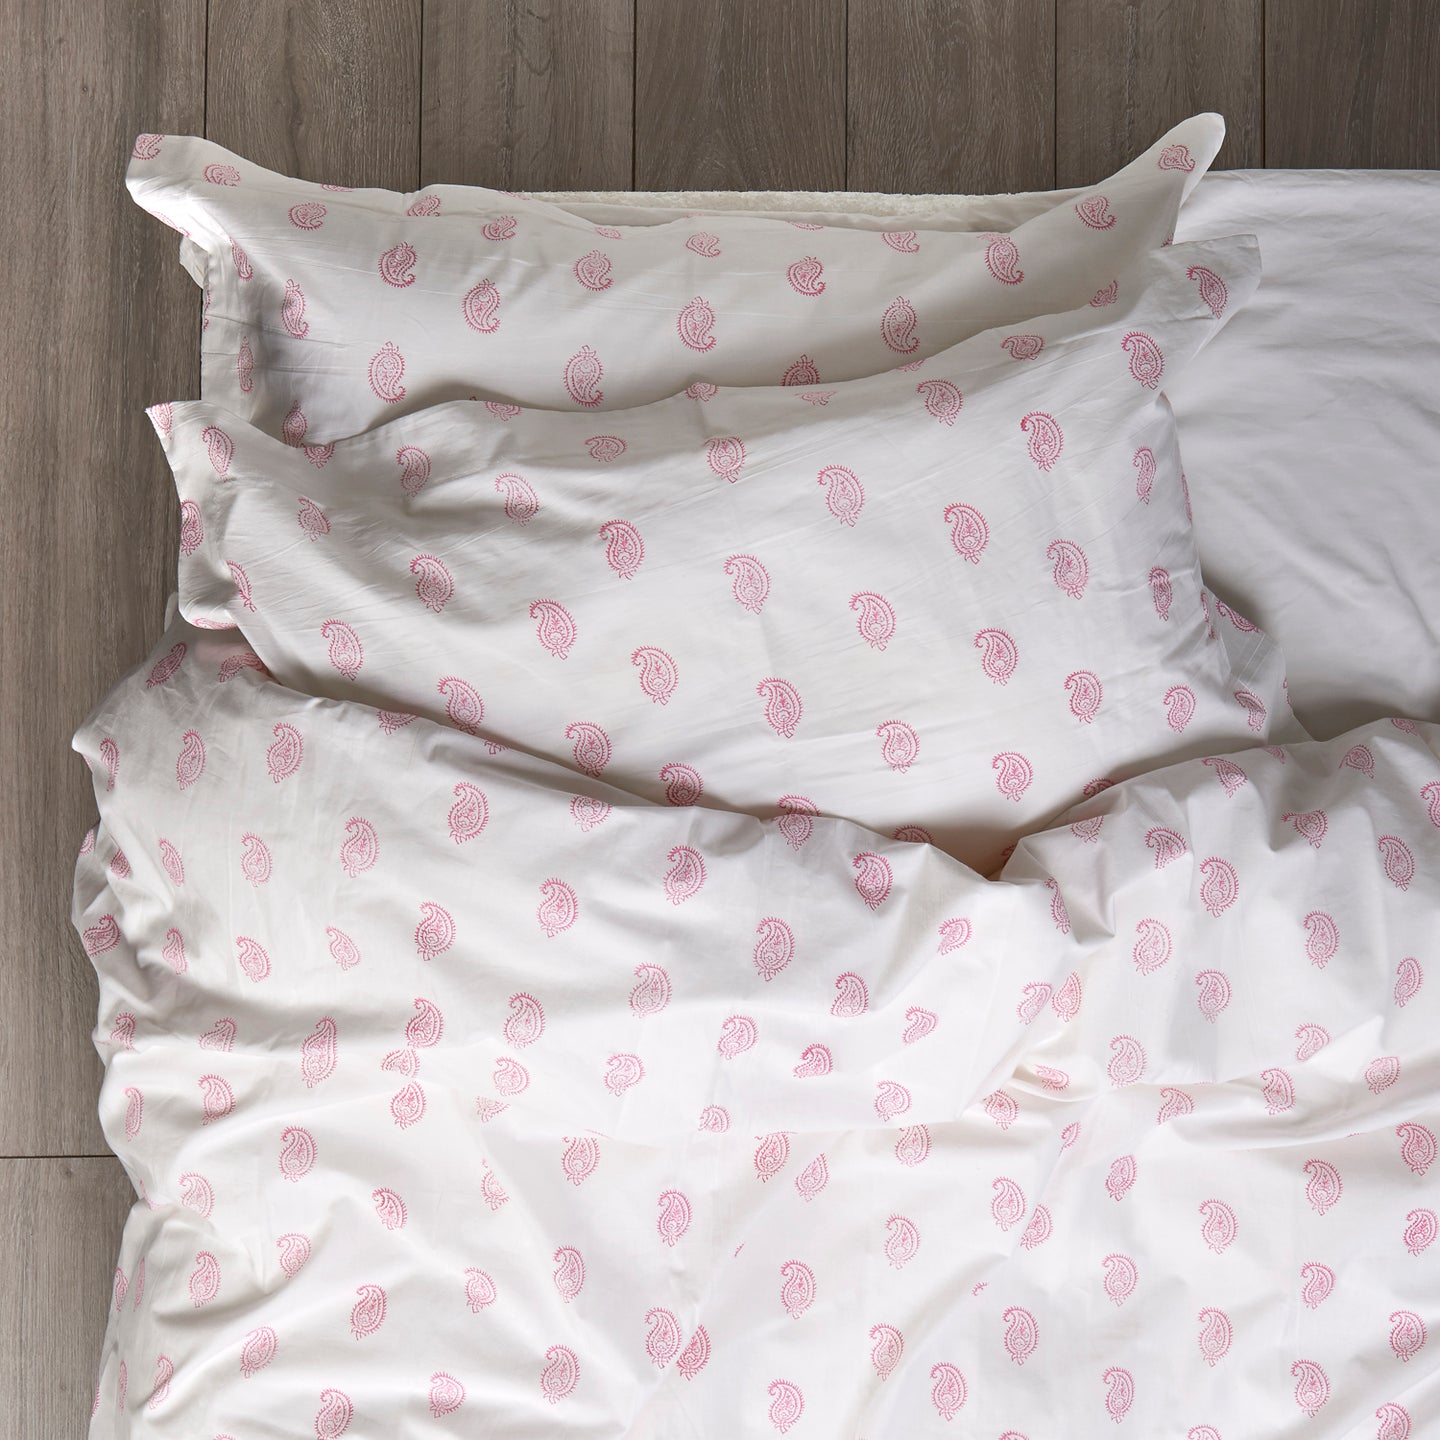 Coco Paisley Duvet Covers and Pillow Set Pink